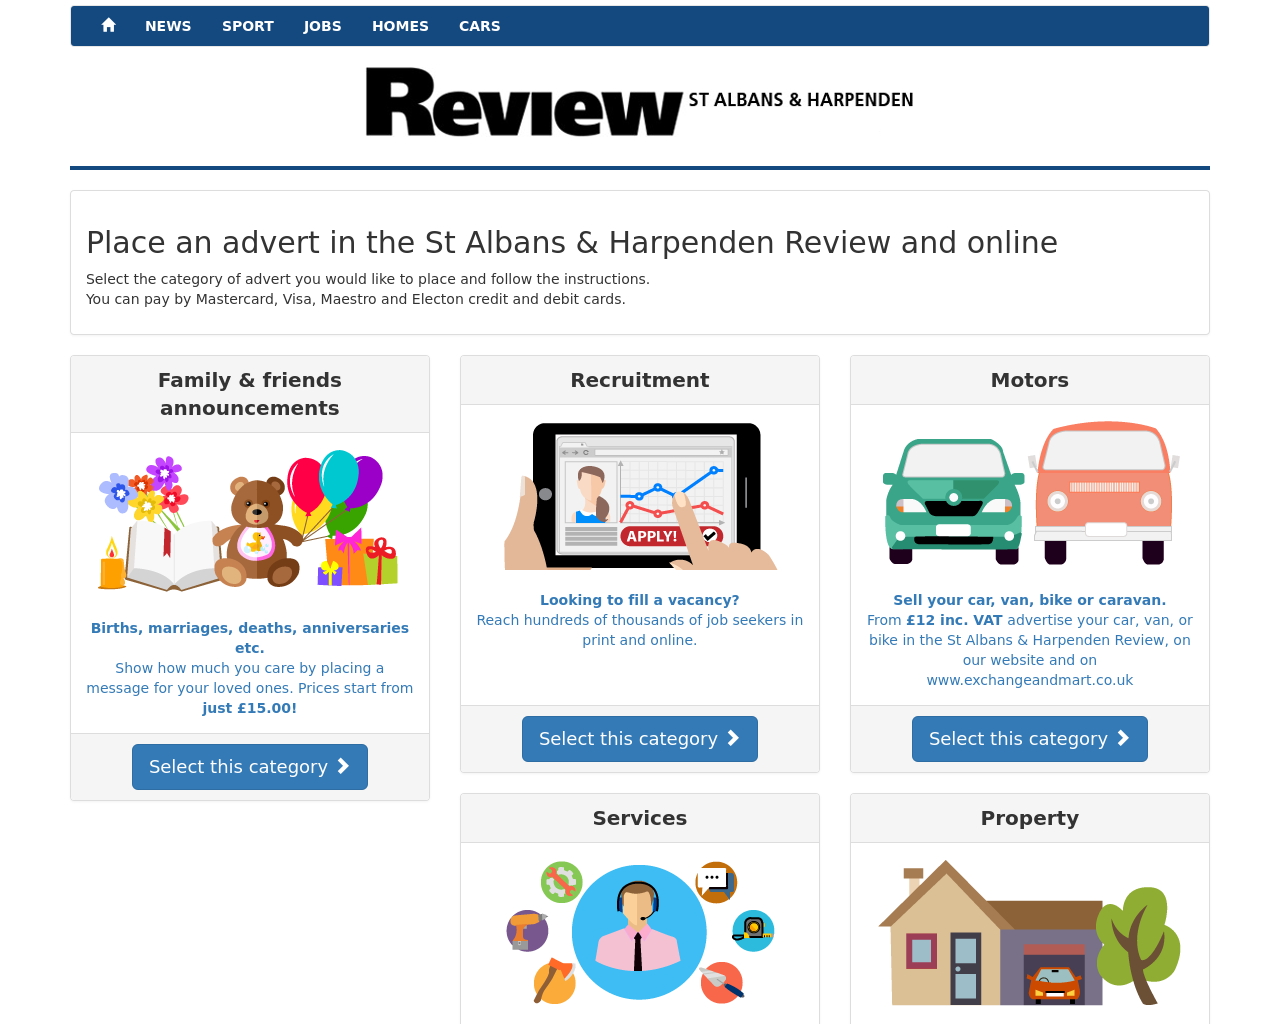 St-Albans-&-Harpenden-Review-Advertising-Reviews-Pricing